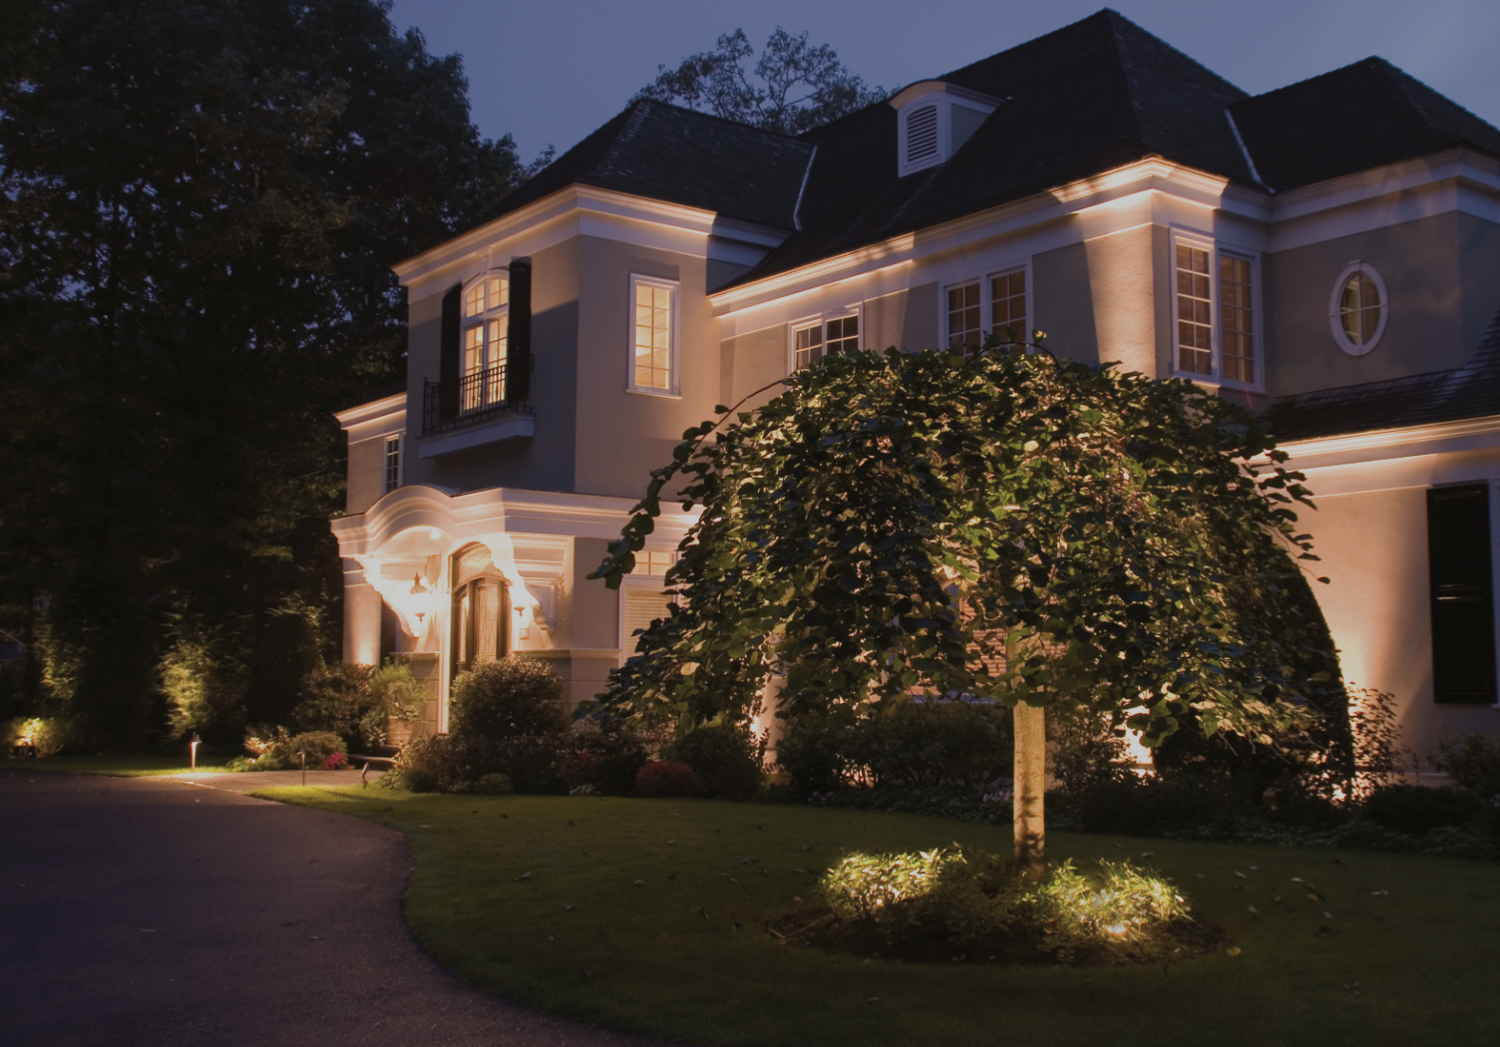 Scarsdale ny landscape lighting outdoor lighting company blue landscape lighting in scarsdale ny mozeypictures Choice Image